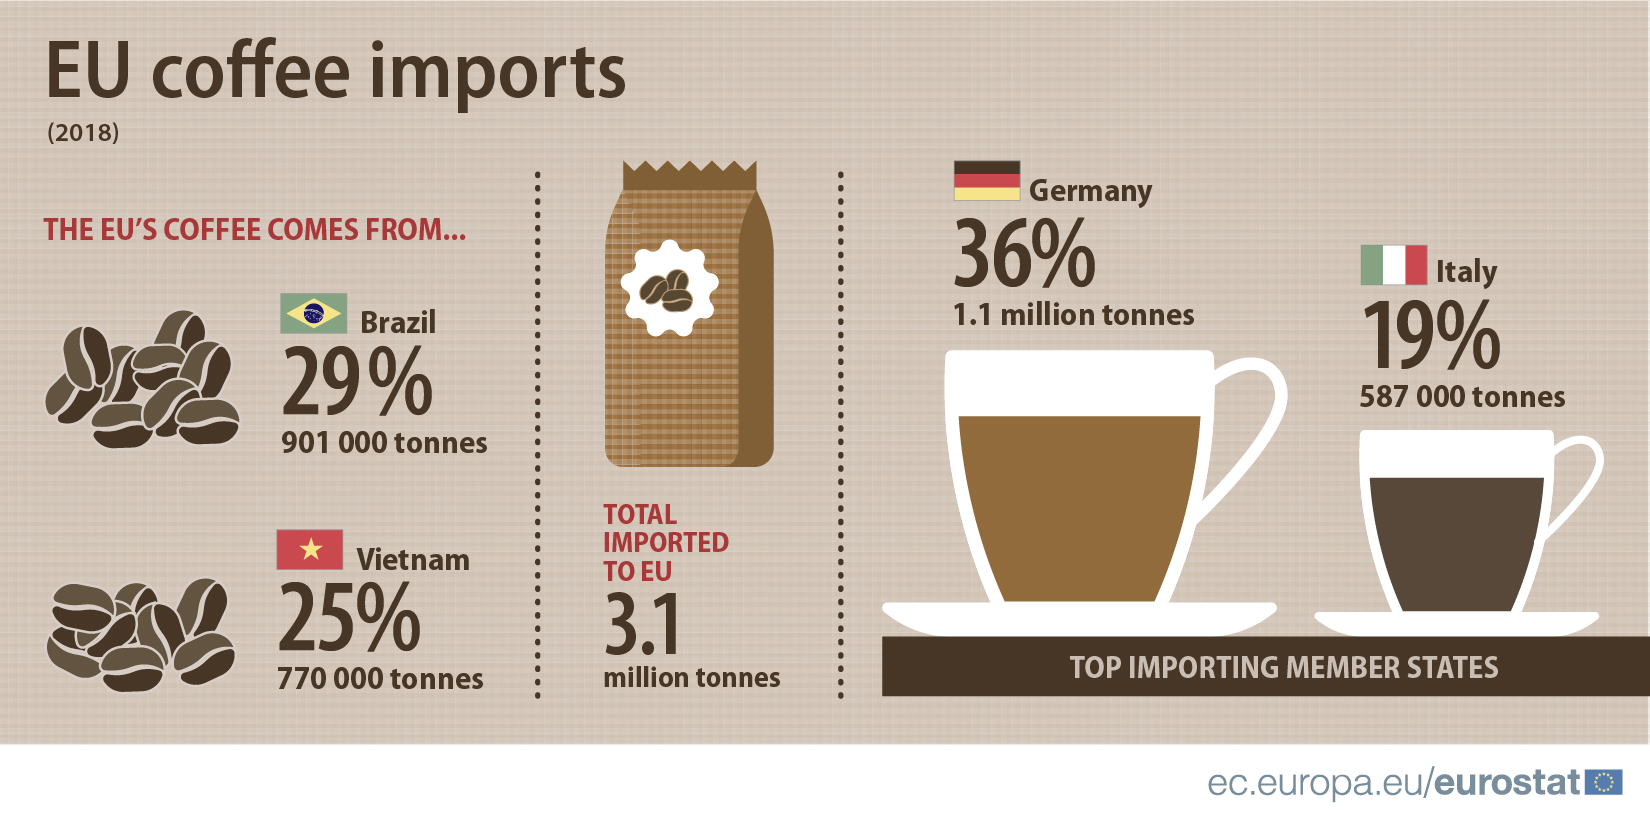 EU coffee imports